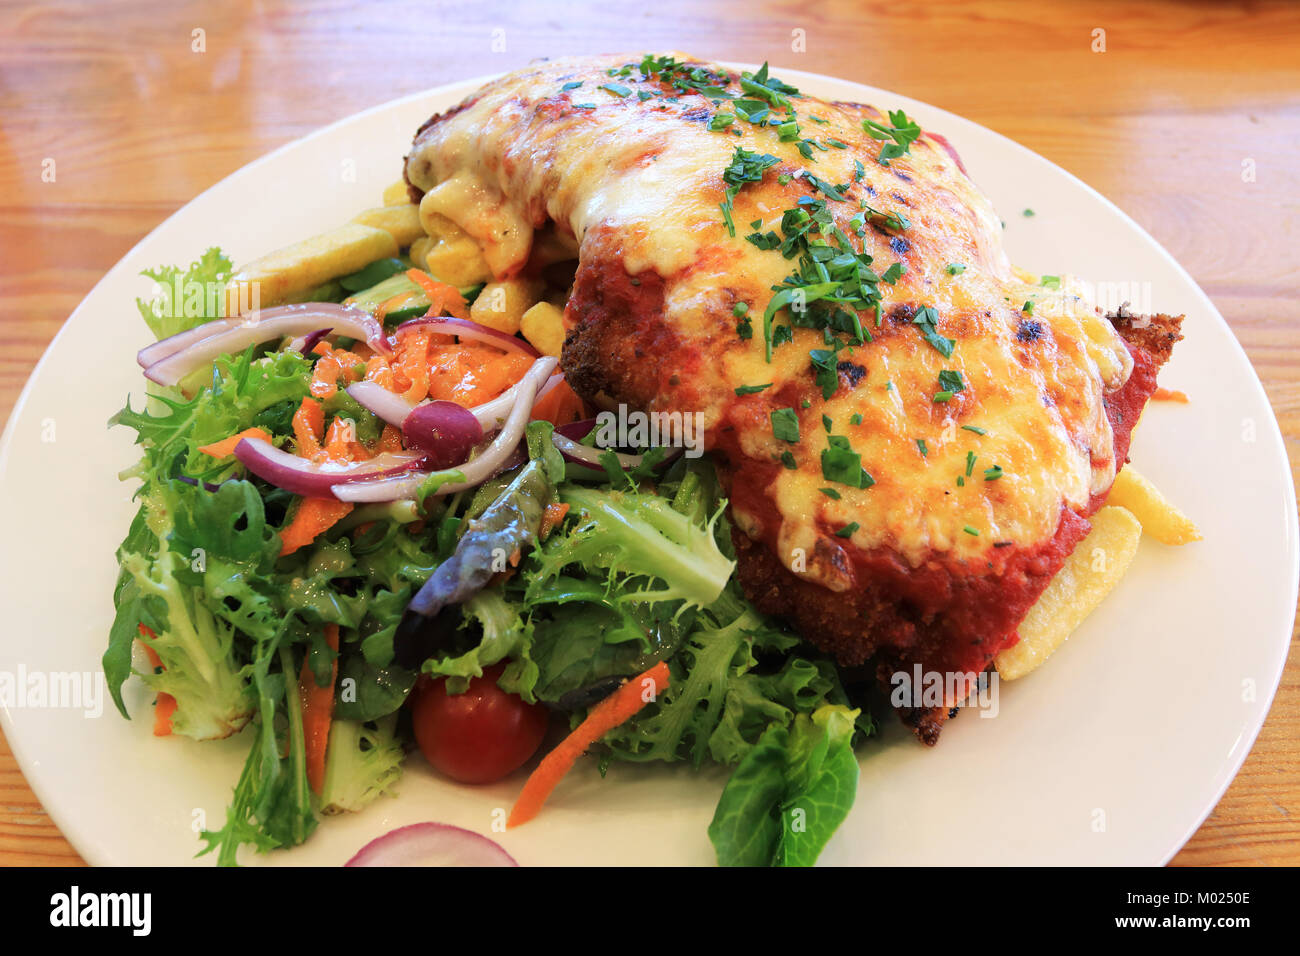 Chicken Schnitzel with chips and fresh garden salad on timber background - Stock Image